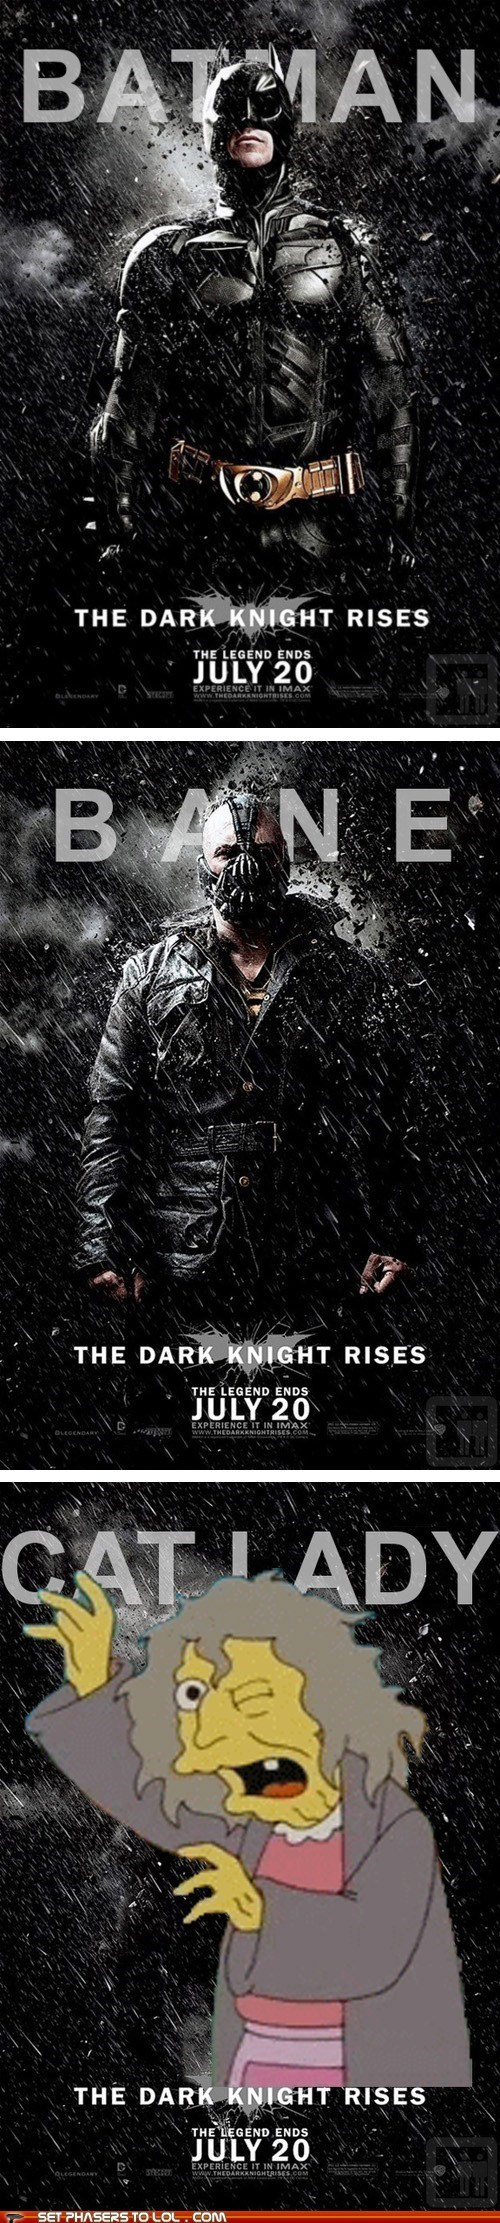 The Dark Knight Rises Character Posters